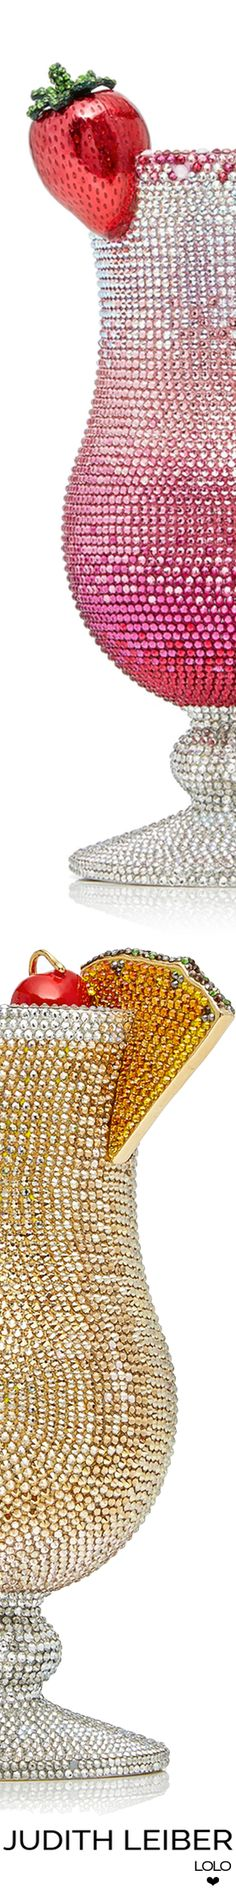 JUDITH LEIBER COUTURE COCKTAIL PINK LADY CLUTCH